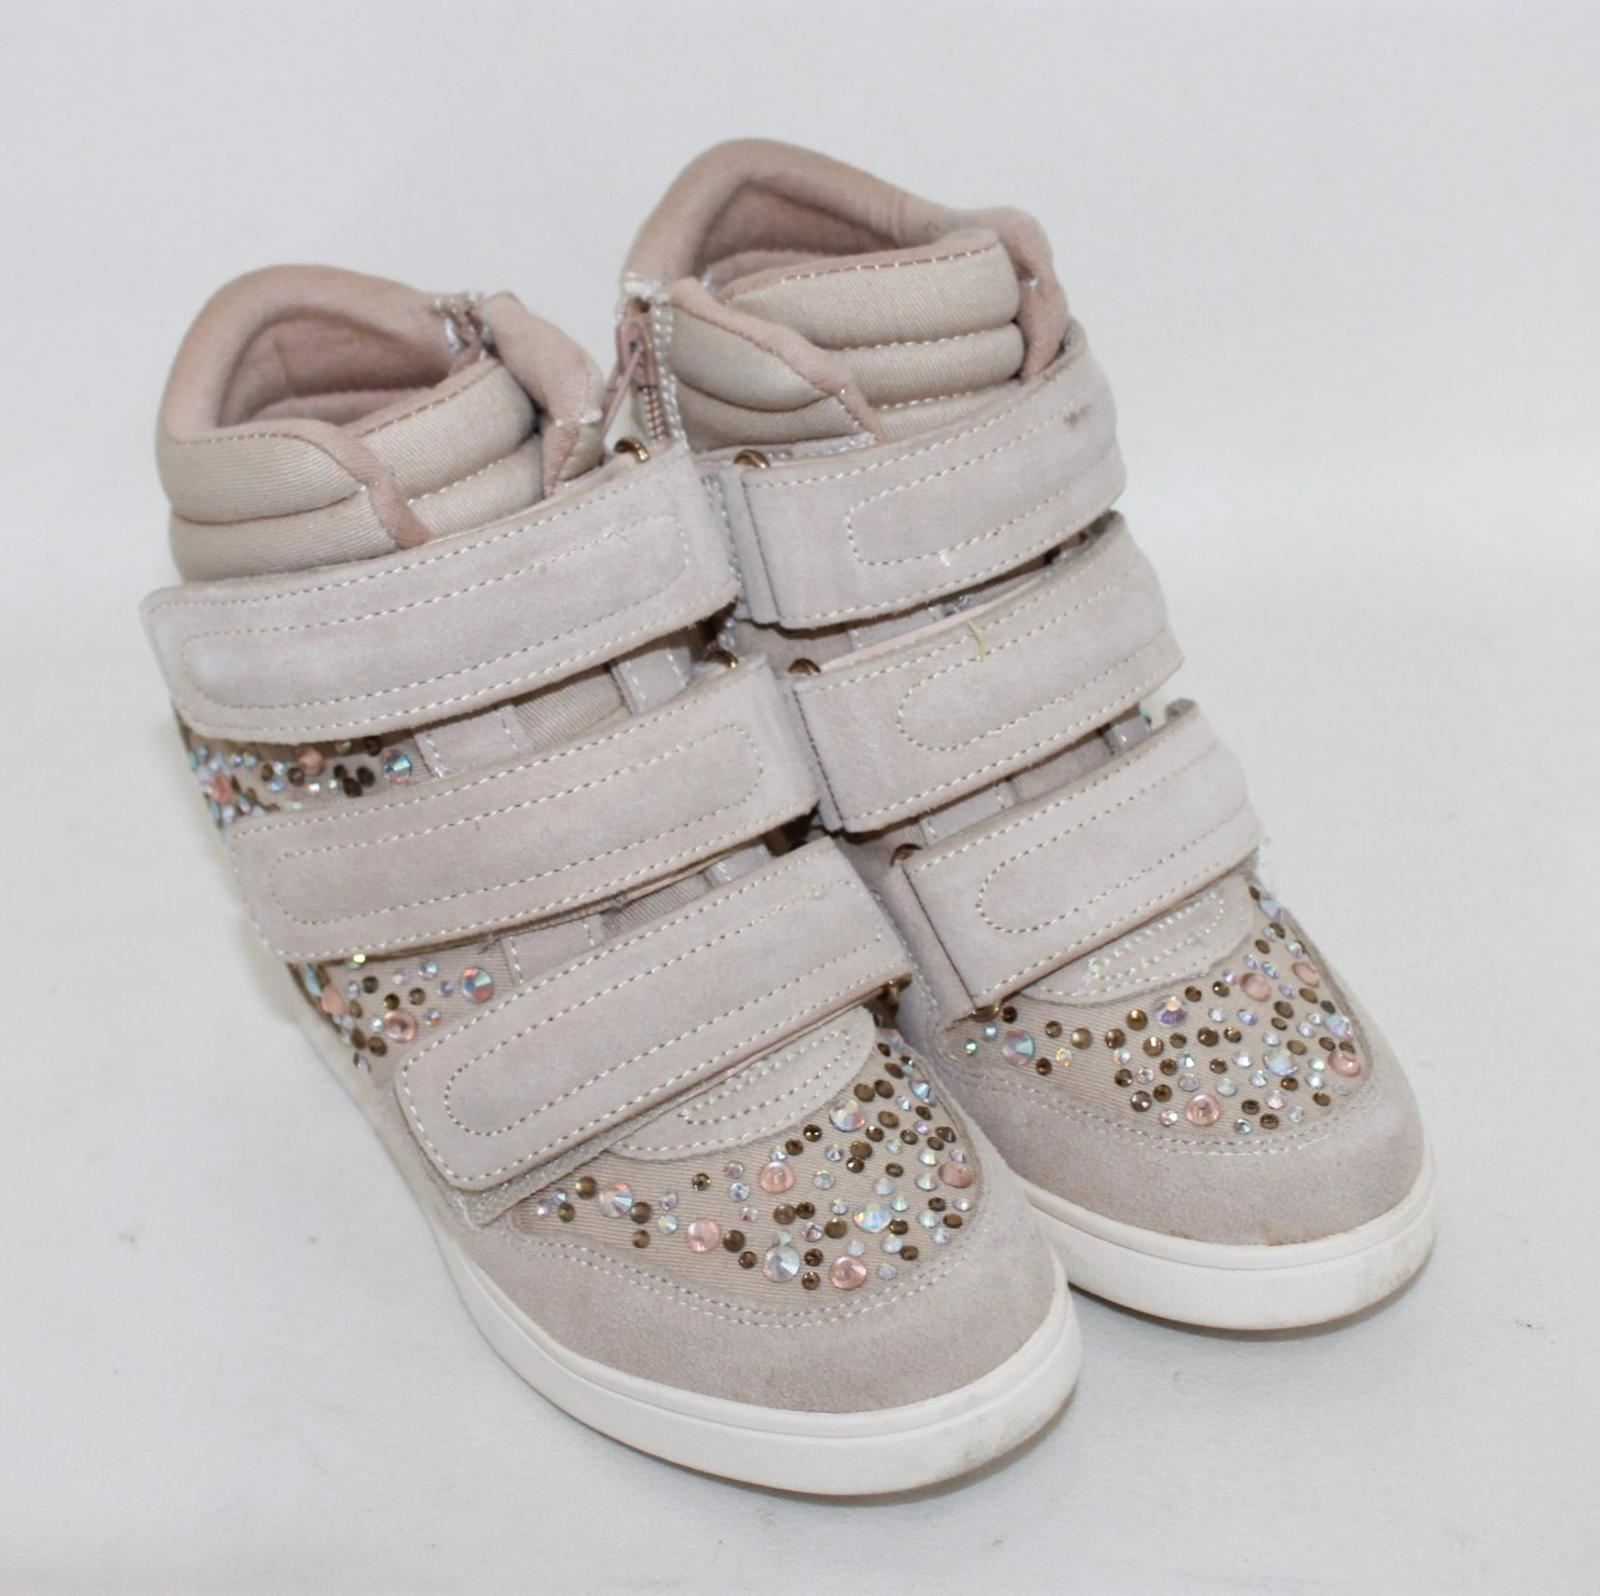 5be03afb12 ALDO Ladies Beige Sparkly Crystals Suede High Top Sneakers Shoes UK3 ...